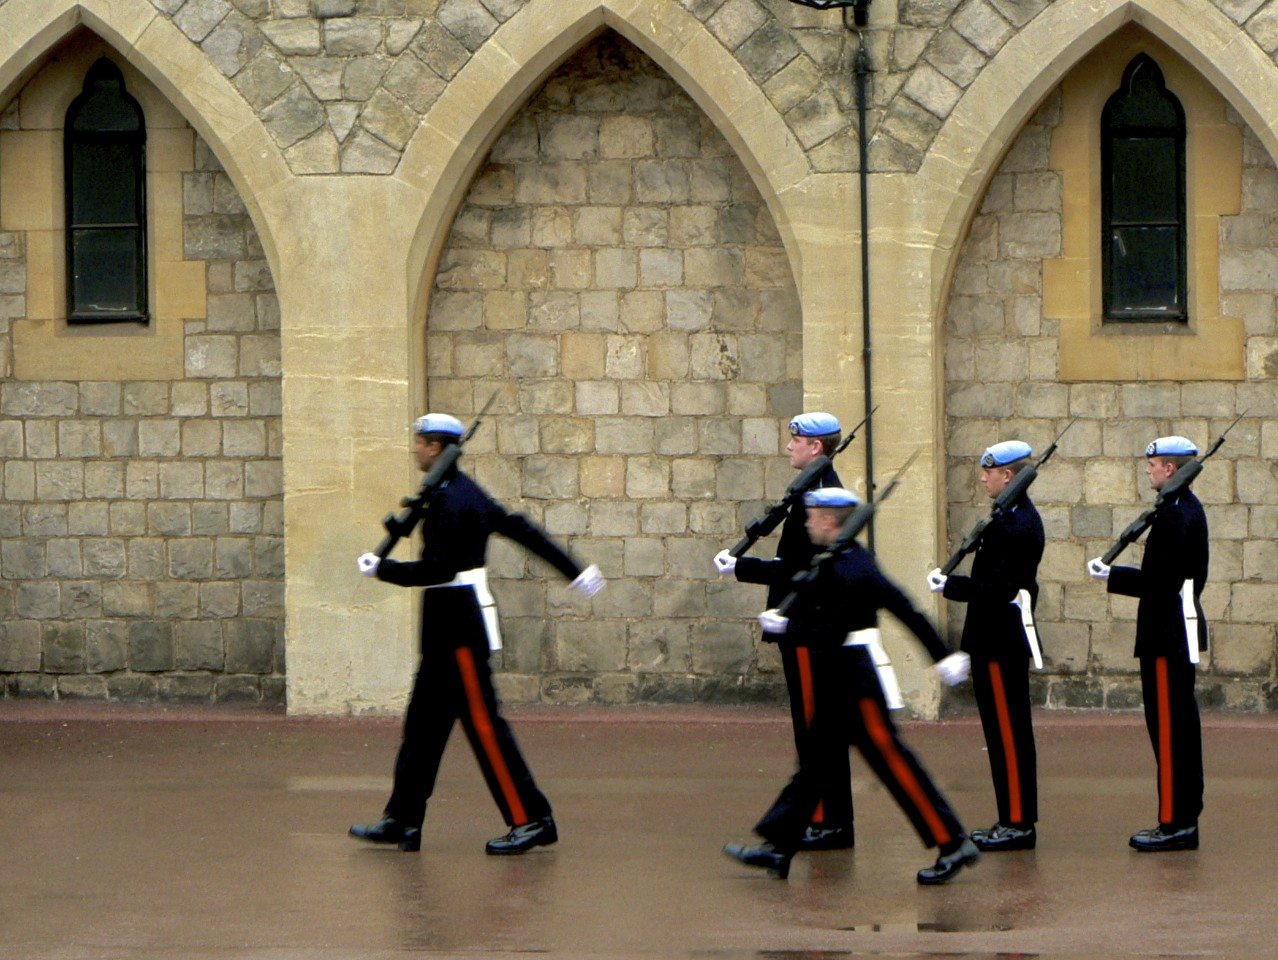 Boys in Uniform at Windsor